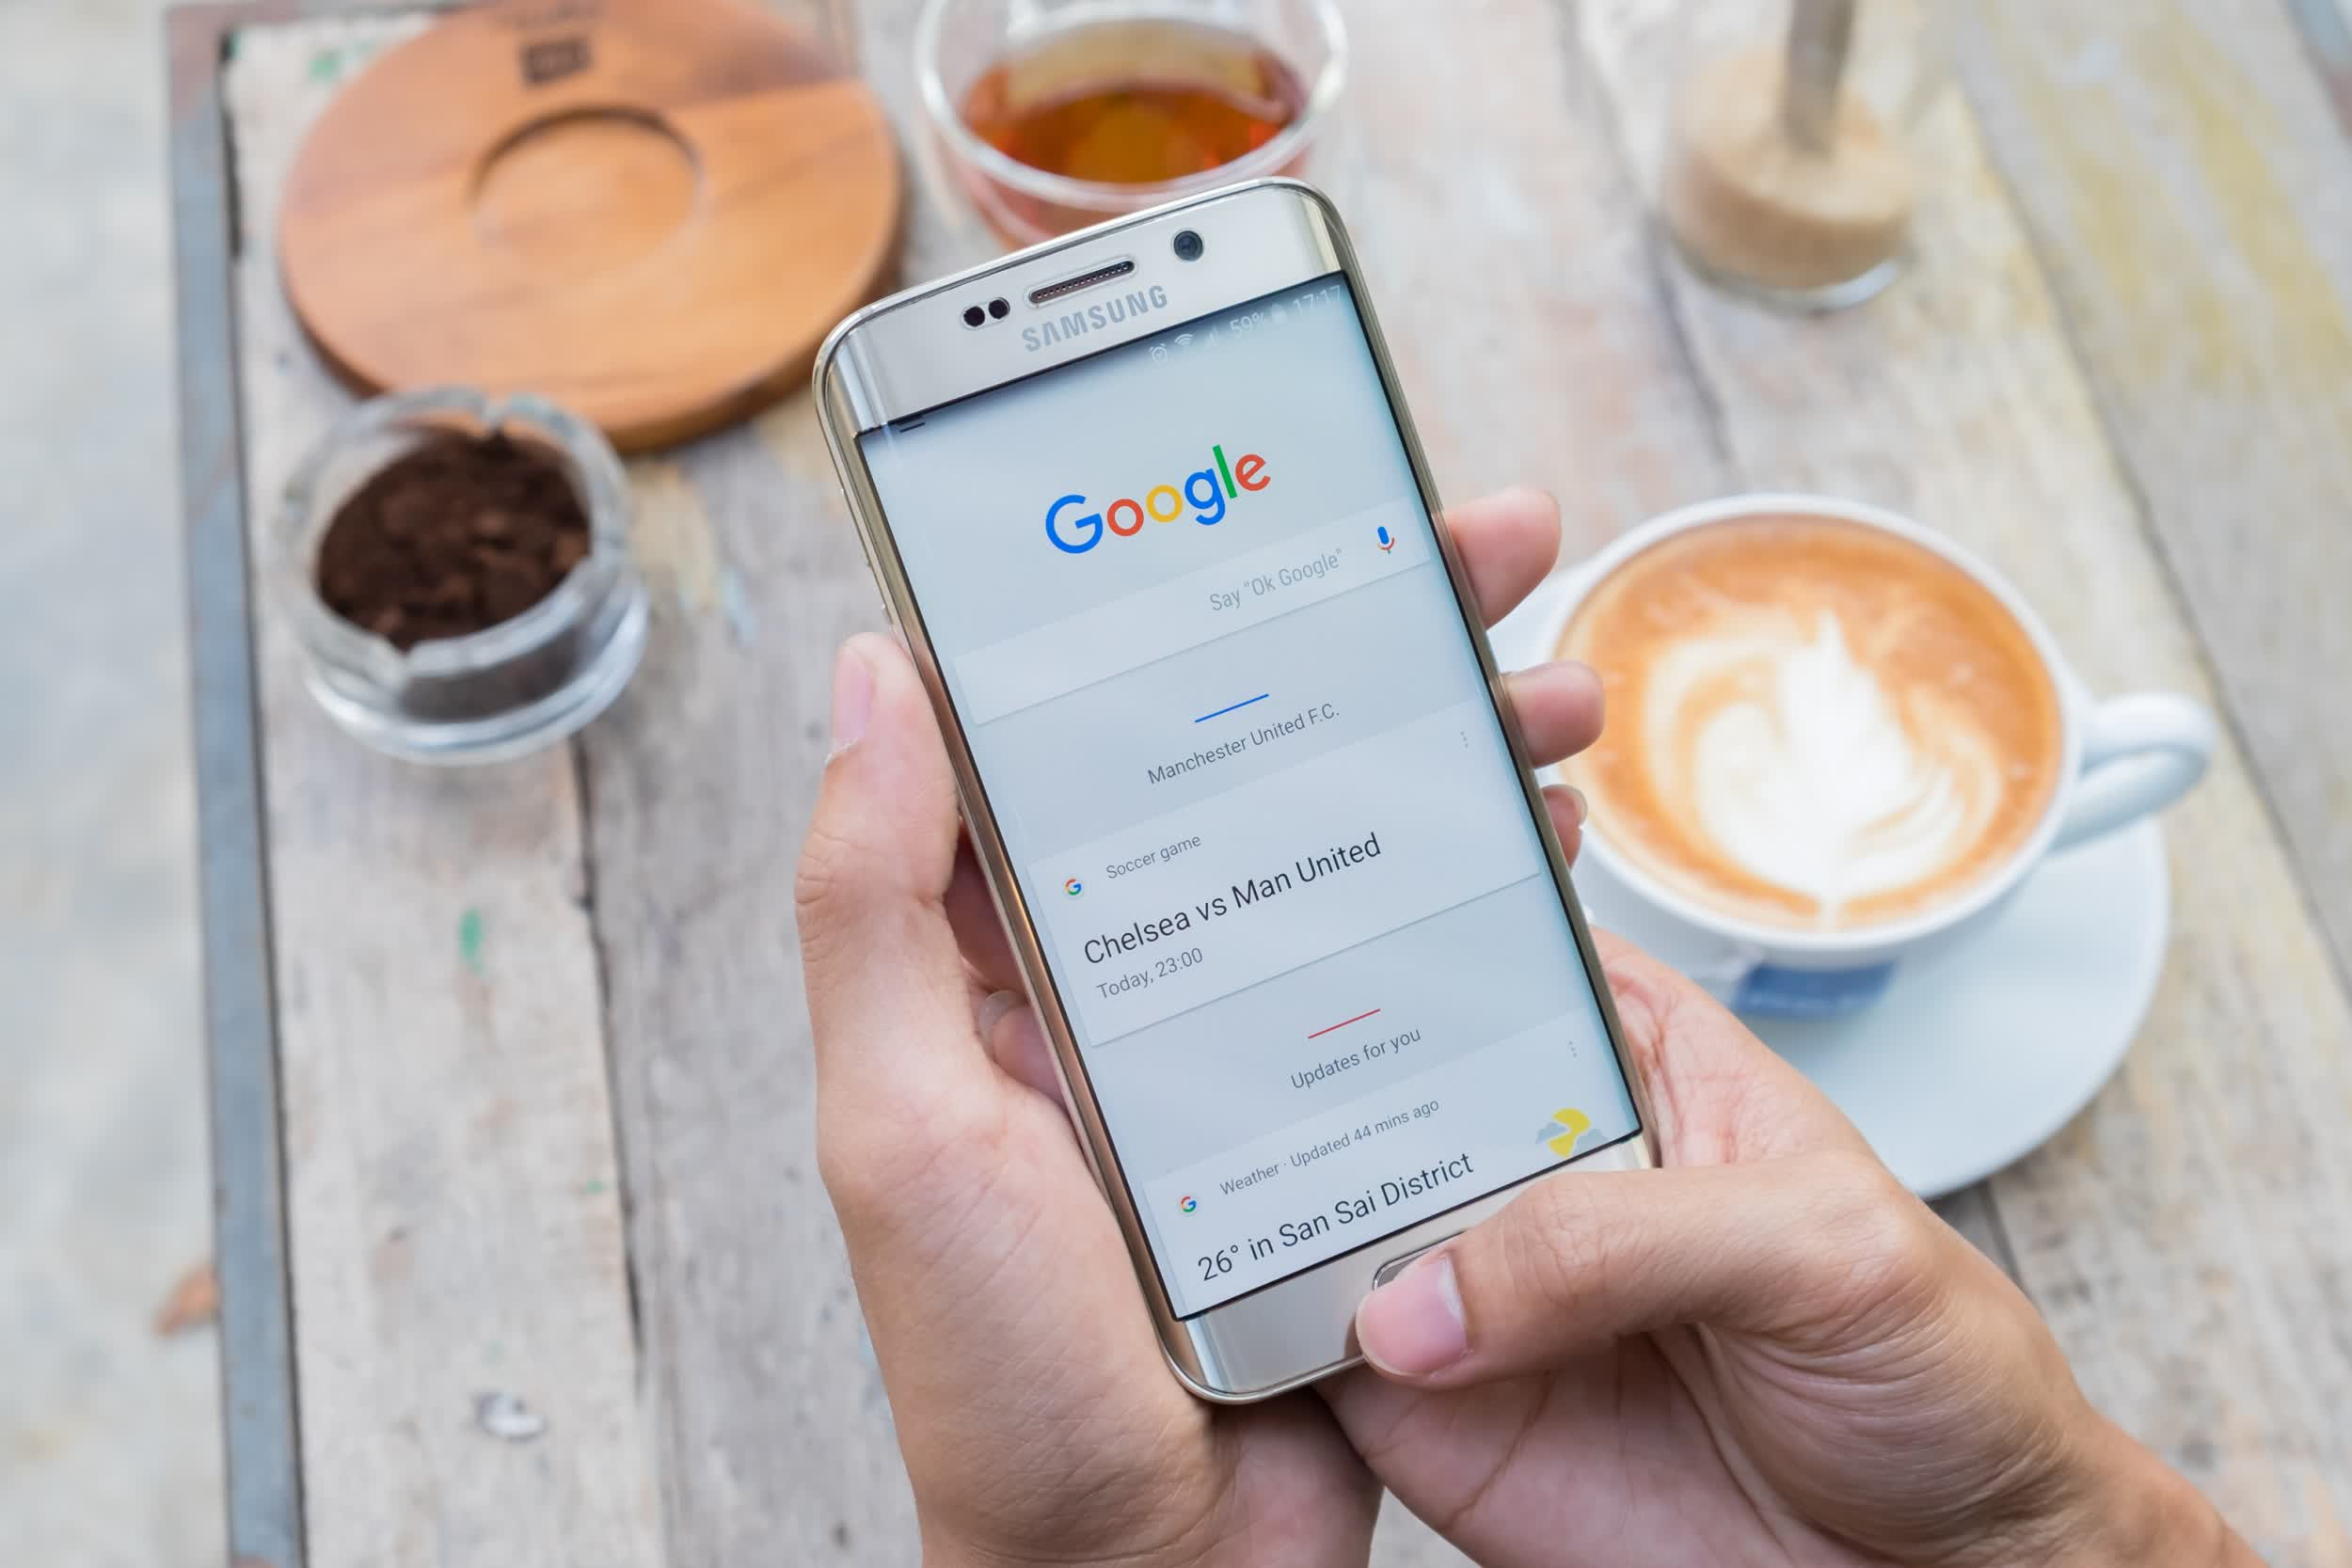 Google now lets you delete your last 15 minutes of browsing history instantly